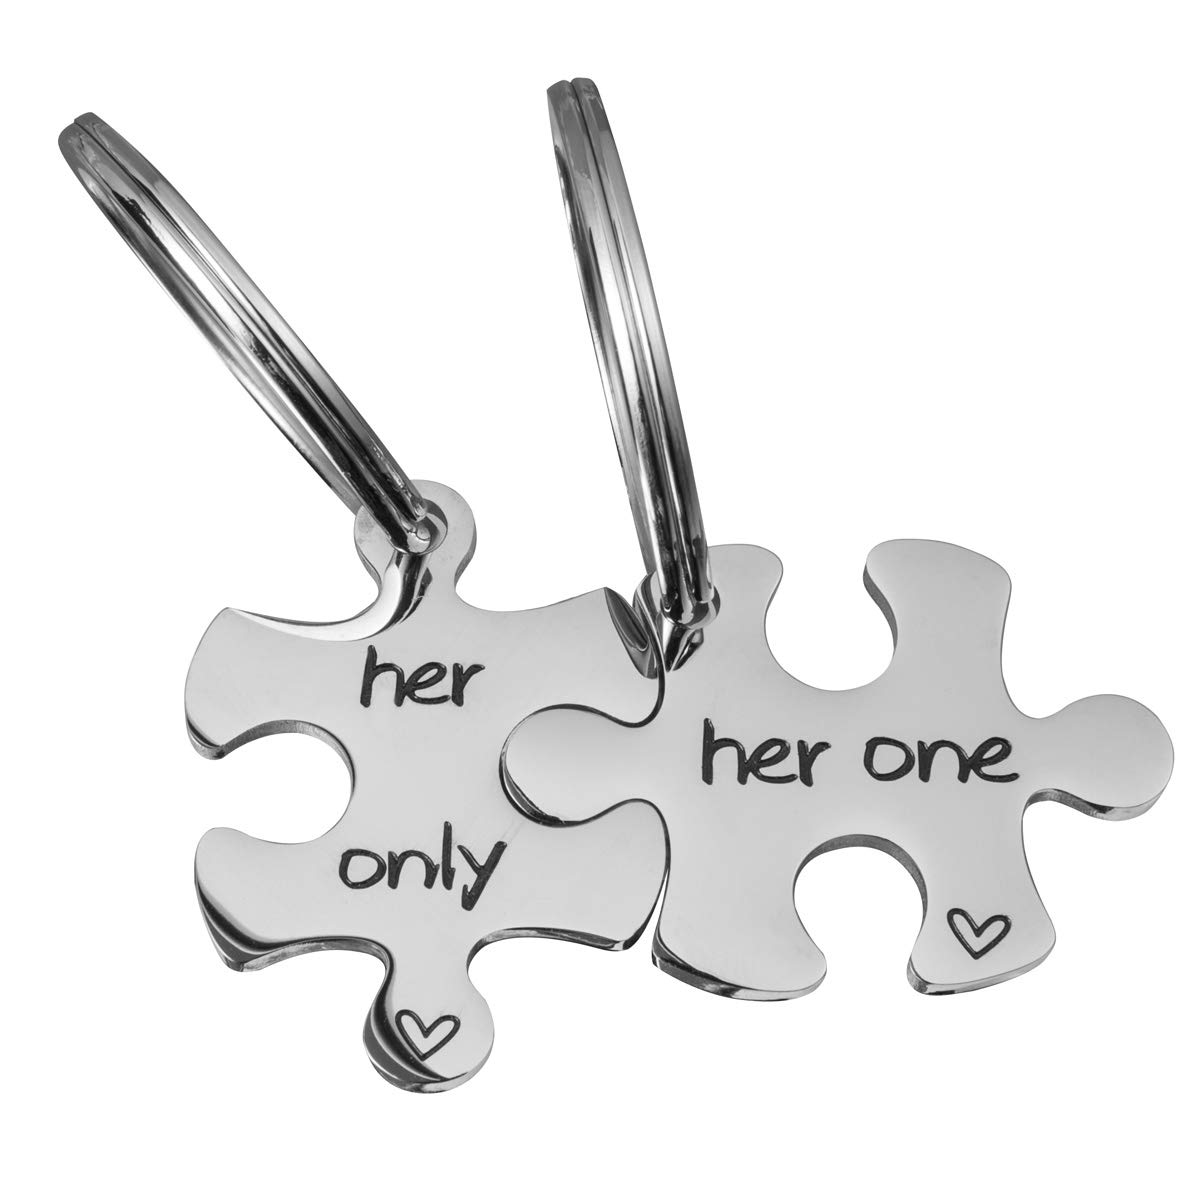 f6dc357c1e COMISAN Gay Couples Jewelry Gay Couple Keychains Personalized Couples  Jewelry Couples Puzzle Keychain His One His Only Keychains Set of 2 Gift  for Boyfriend ...